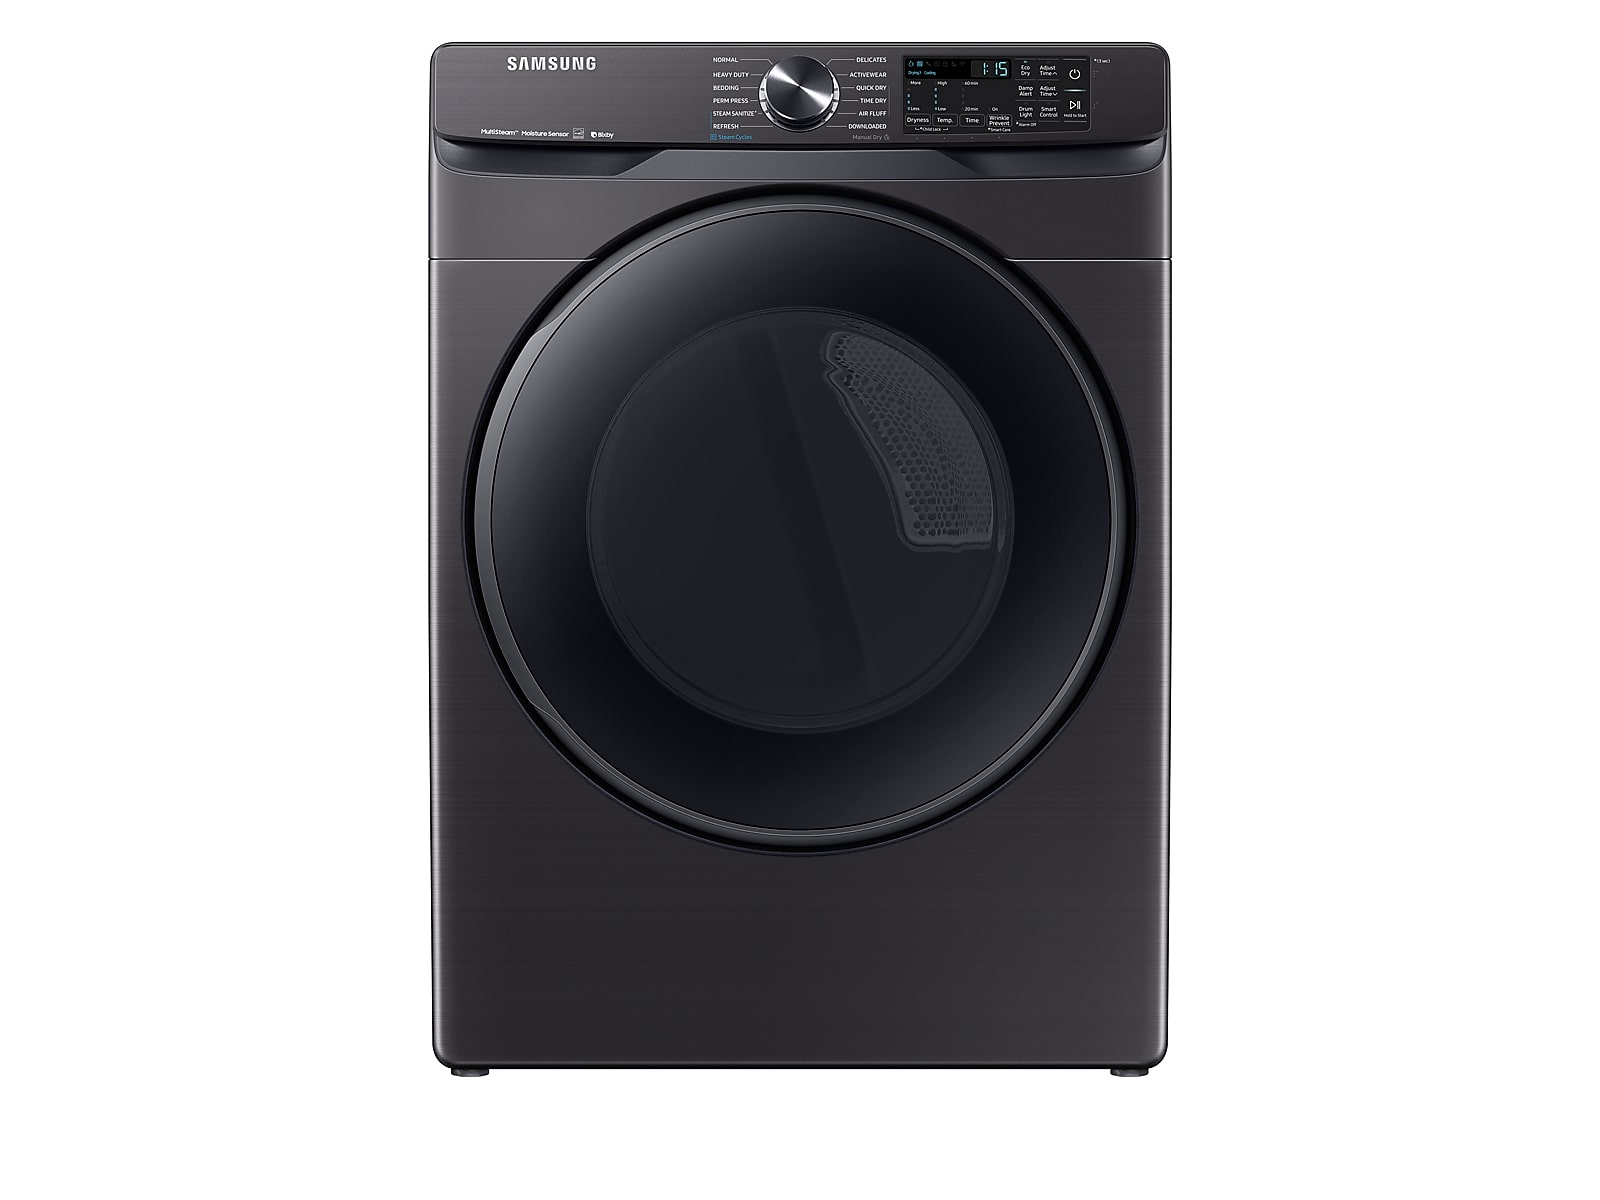 Samsung coupon: Samsung 7.5 cu. ft. Smart Gas Dryer with Steam Sanitize+ in Black Stainless Steel(DVG50R8500V/A3)